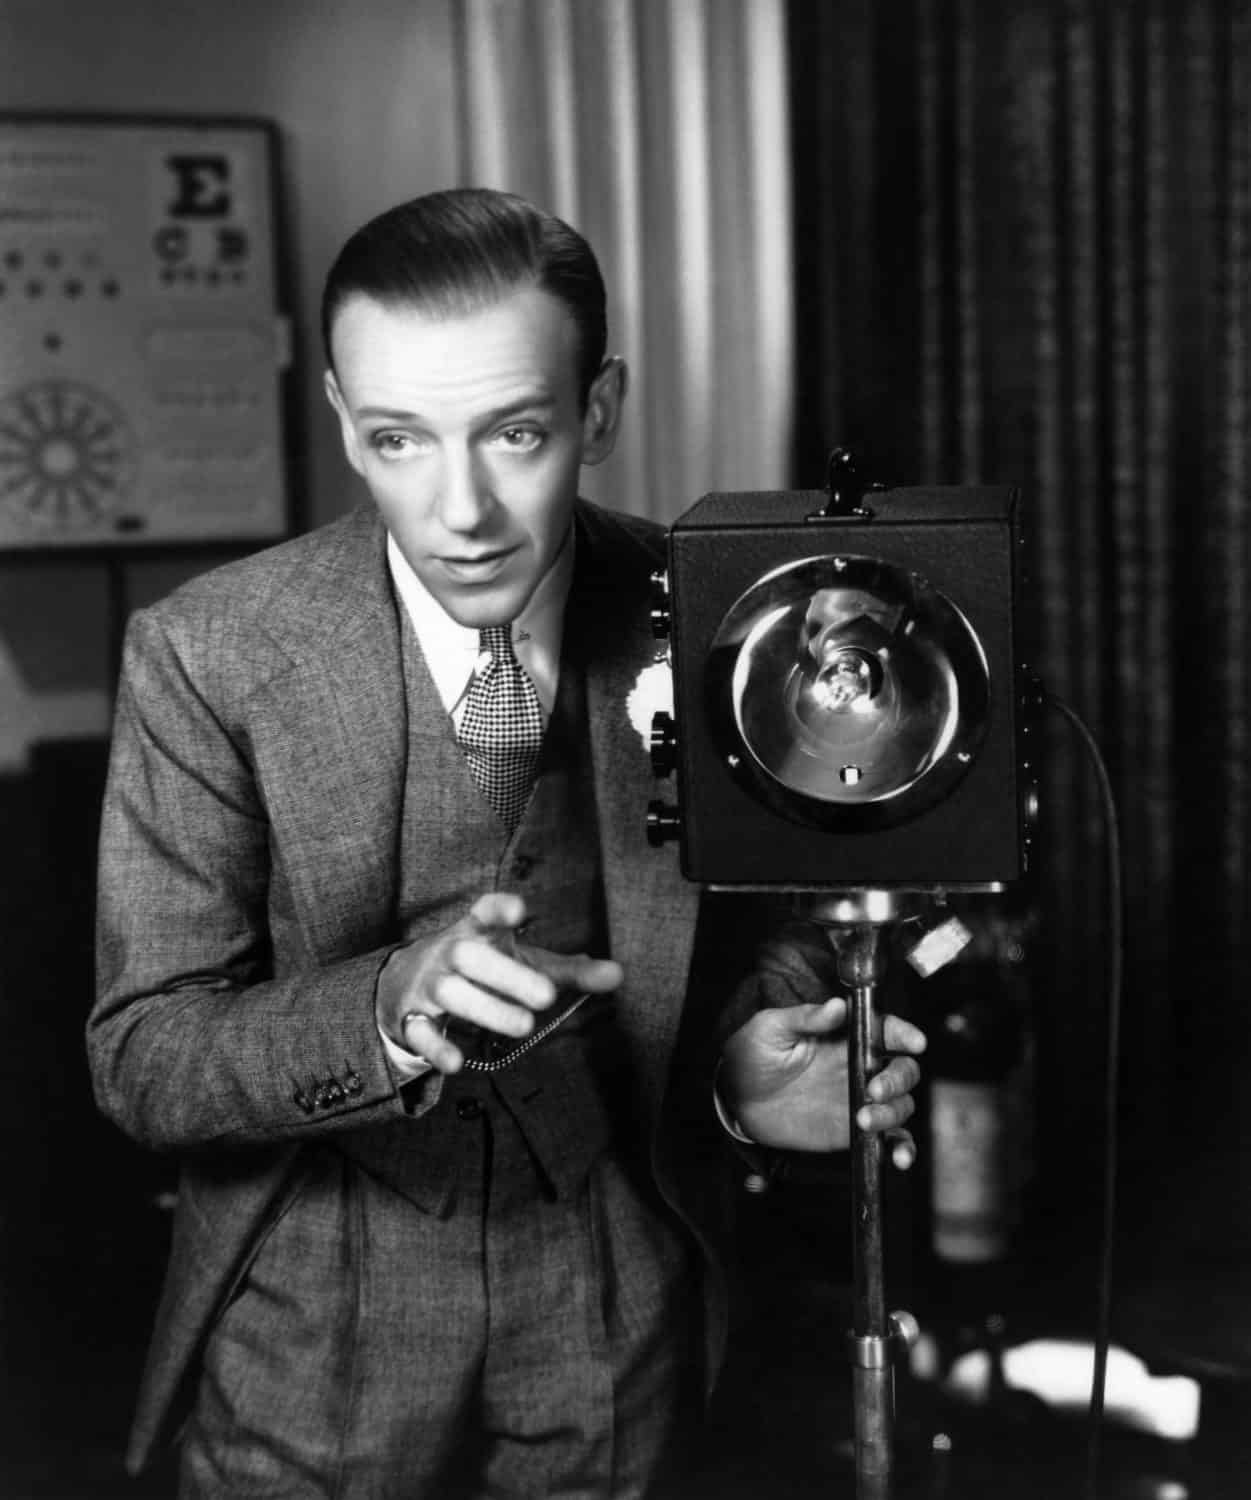 Fred Astaire with collar pin but no tie bar when he wears a three piece suit or vest